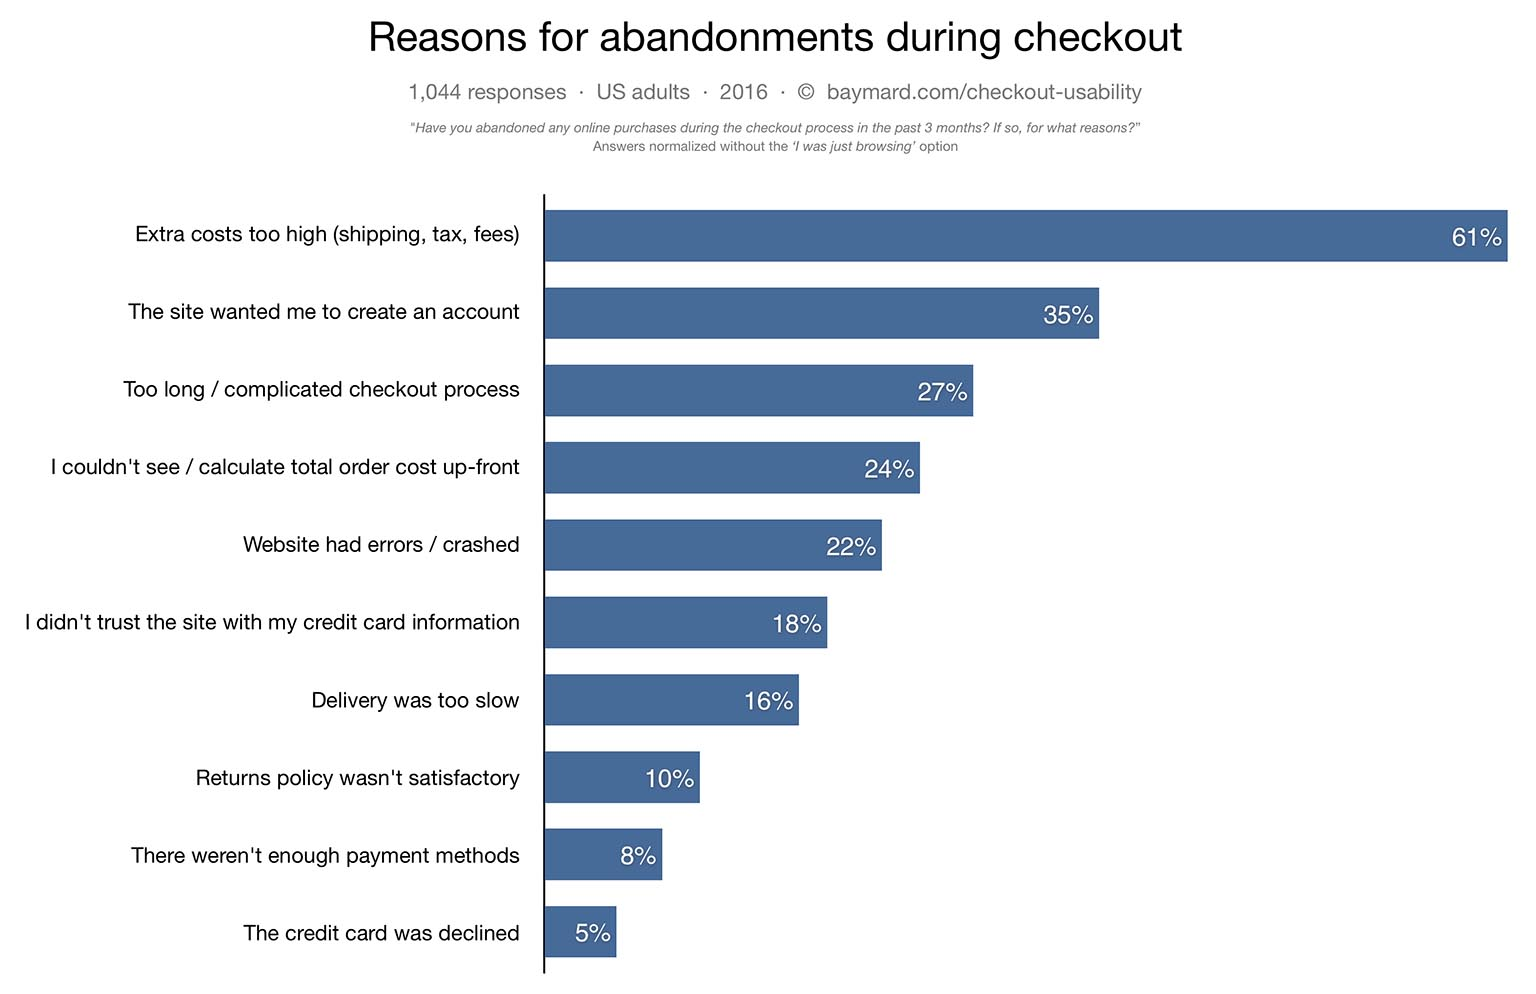 abandoned-cart-reasons-chart-1.jpg